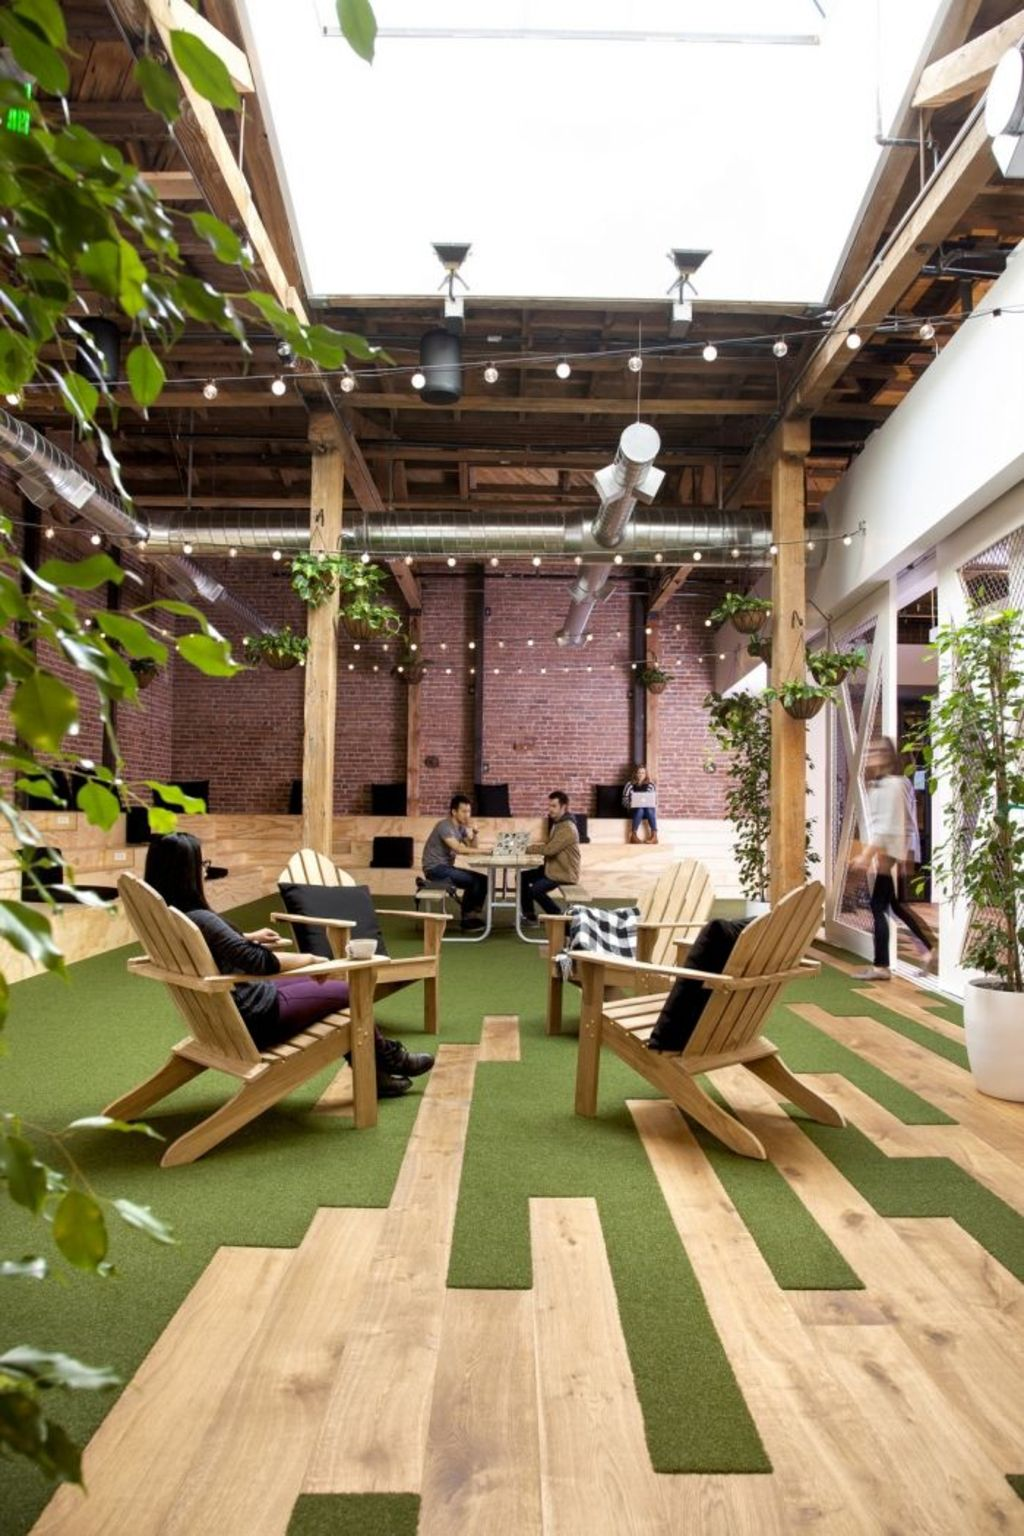 https://elonahome.com/wp-content/uploads/2019/01/Modern-Office-Design-with-Healthy-Natural-Ideas-That-Increases-Productivity-Part-14.jpg